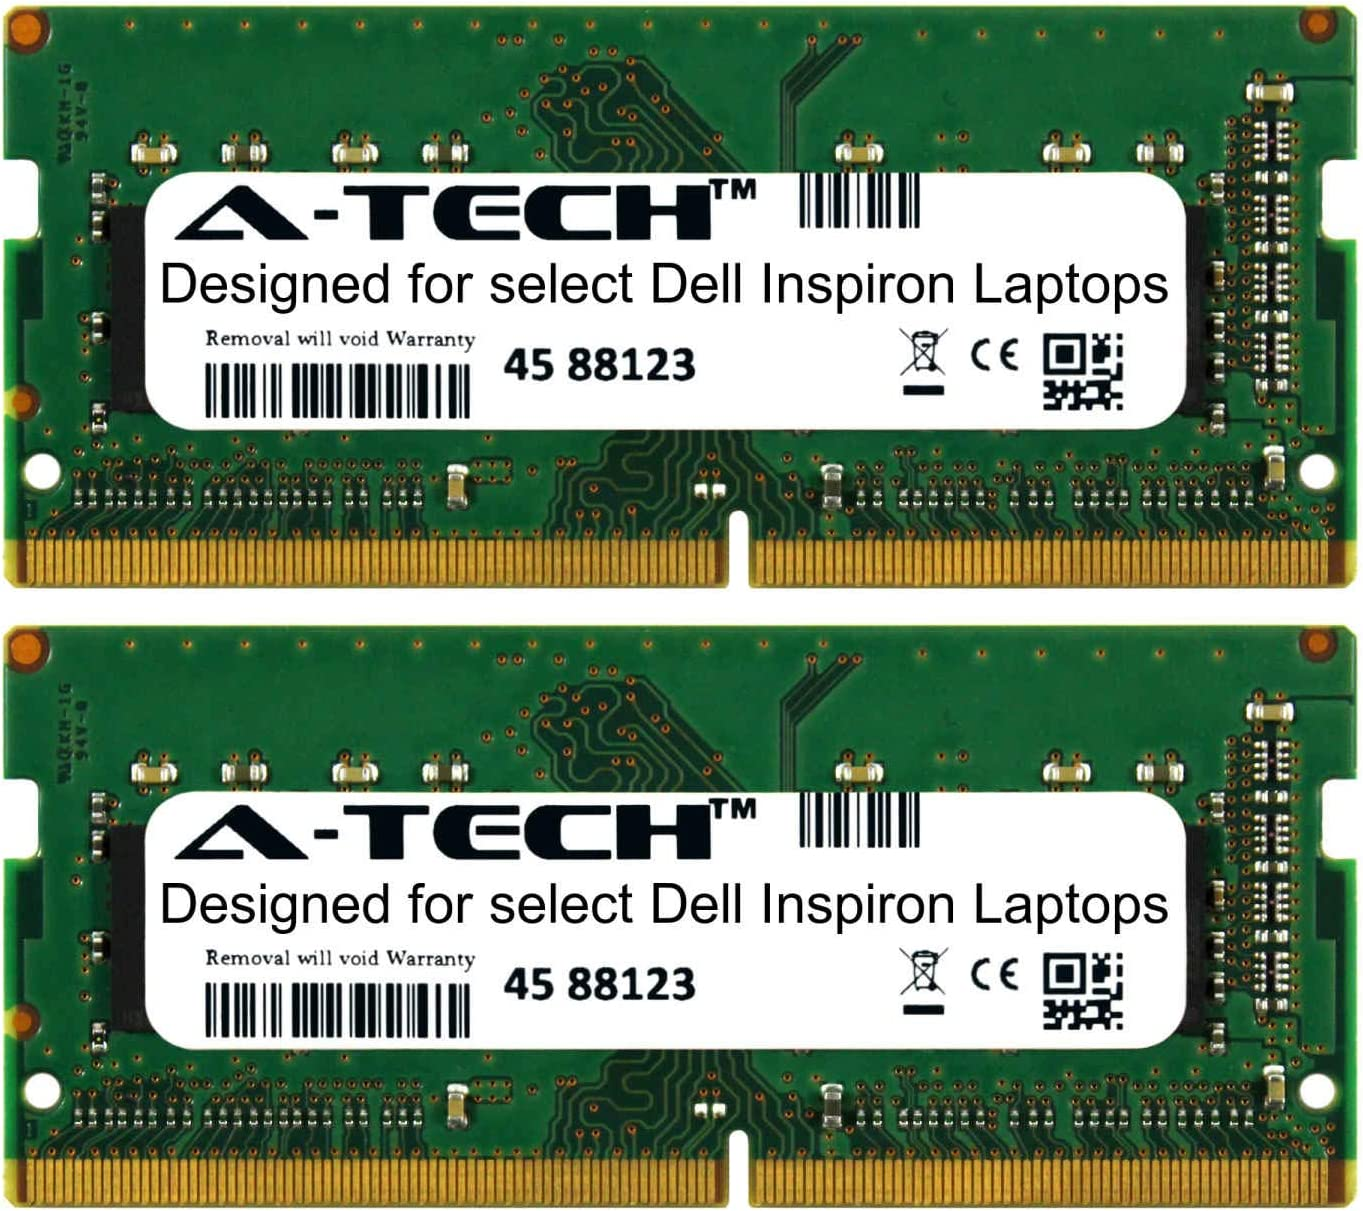 A-Tech 32GB Kit (2 x 16GB) for Dell Inspiron 7000 Series 7375 7460 7467 7560 7566 7567 7570 7573 7577 7580 7586 7773 7786 2400Mhz DDR4 Laptop & Notebook Memory Ram Modules